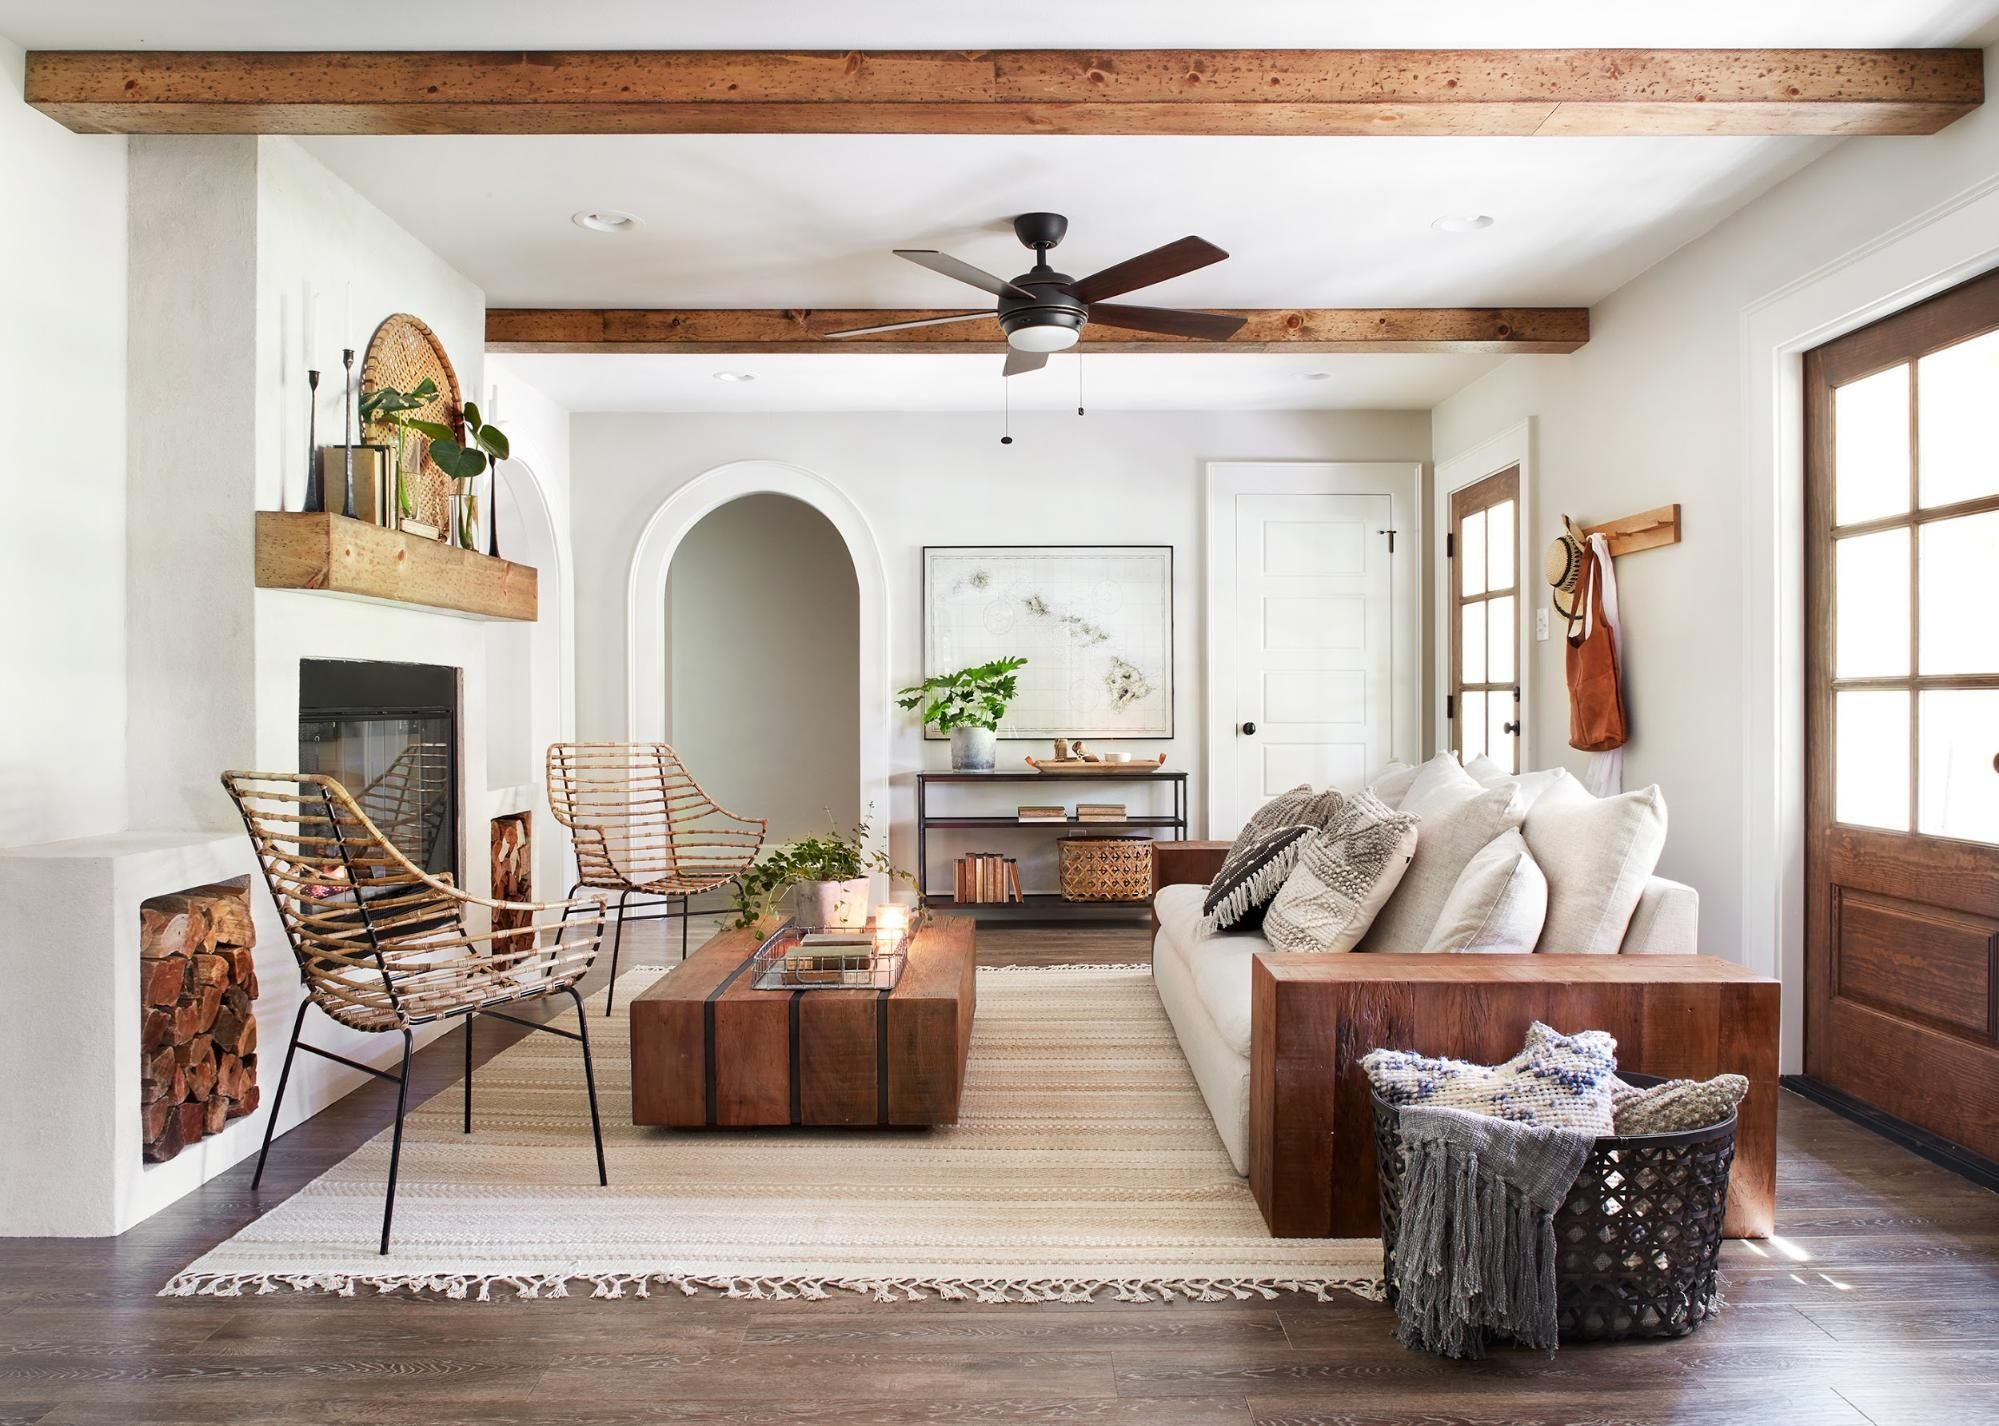 fixer upper season 5 episode 3 ivy house chip joanna gaines in 2019 living room. Black Bedroom Furniture Sets. Home Design Ideas